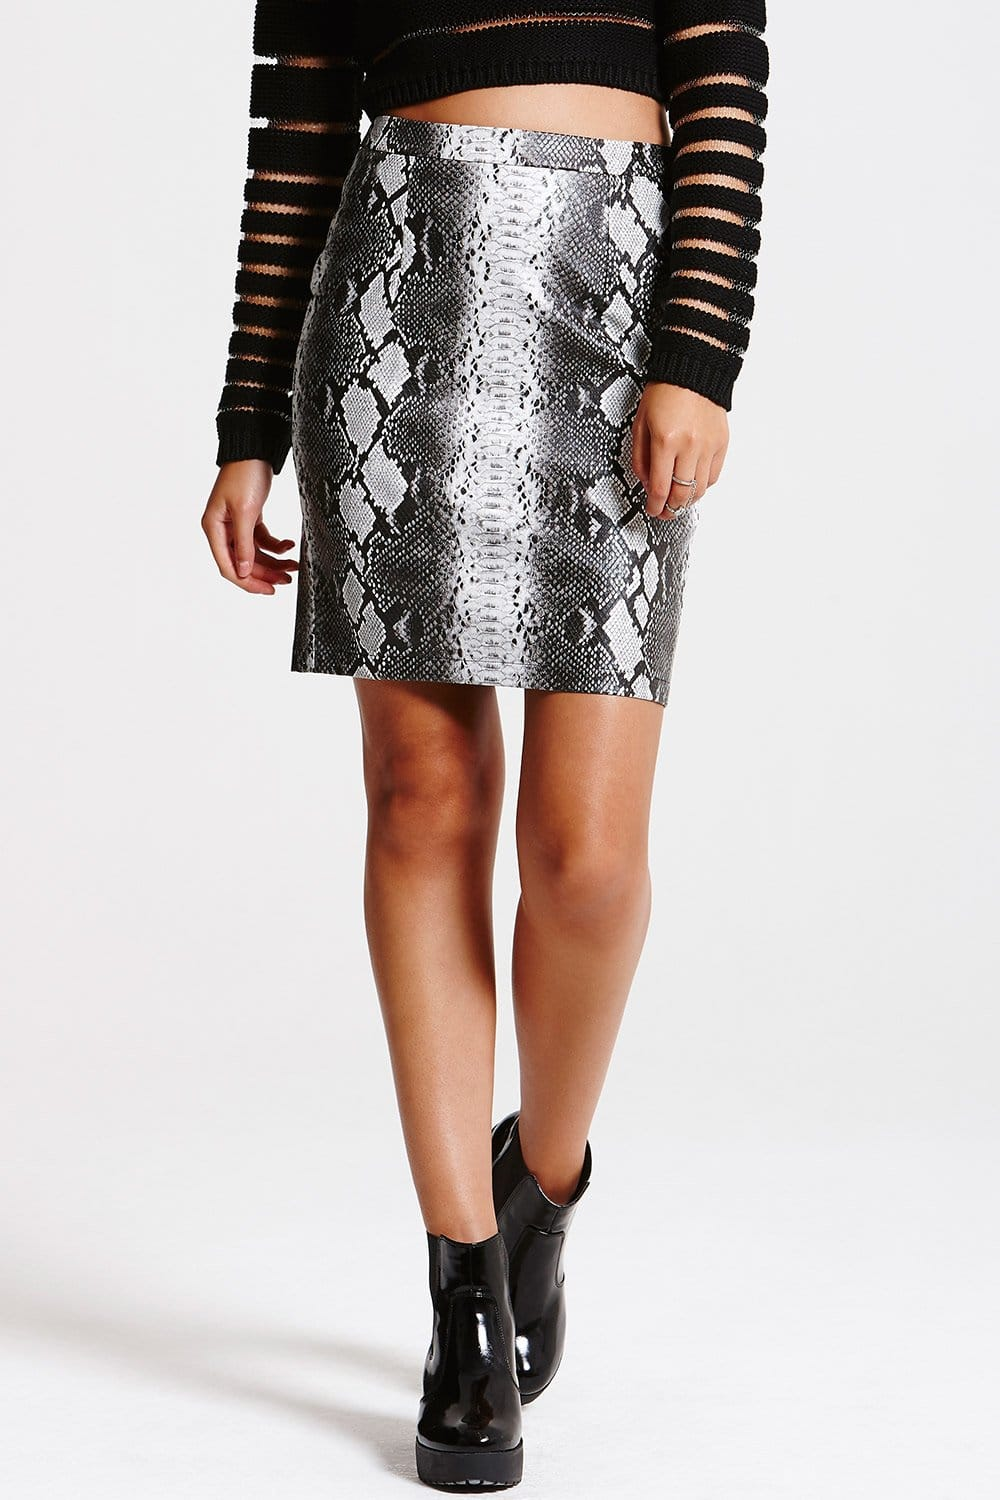 Outlet Girls On Film Grey Snakeskin PU Leather Mini Skirt - Outlet ...